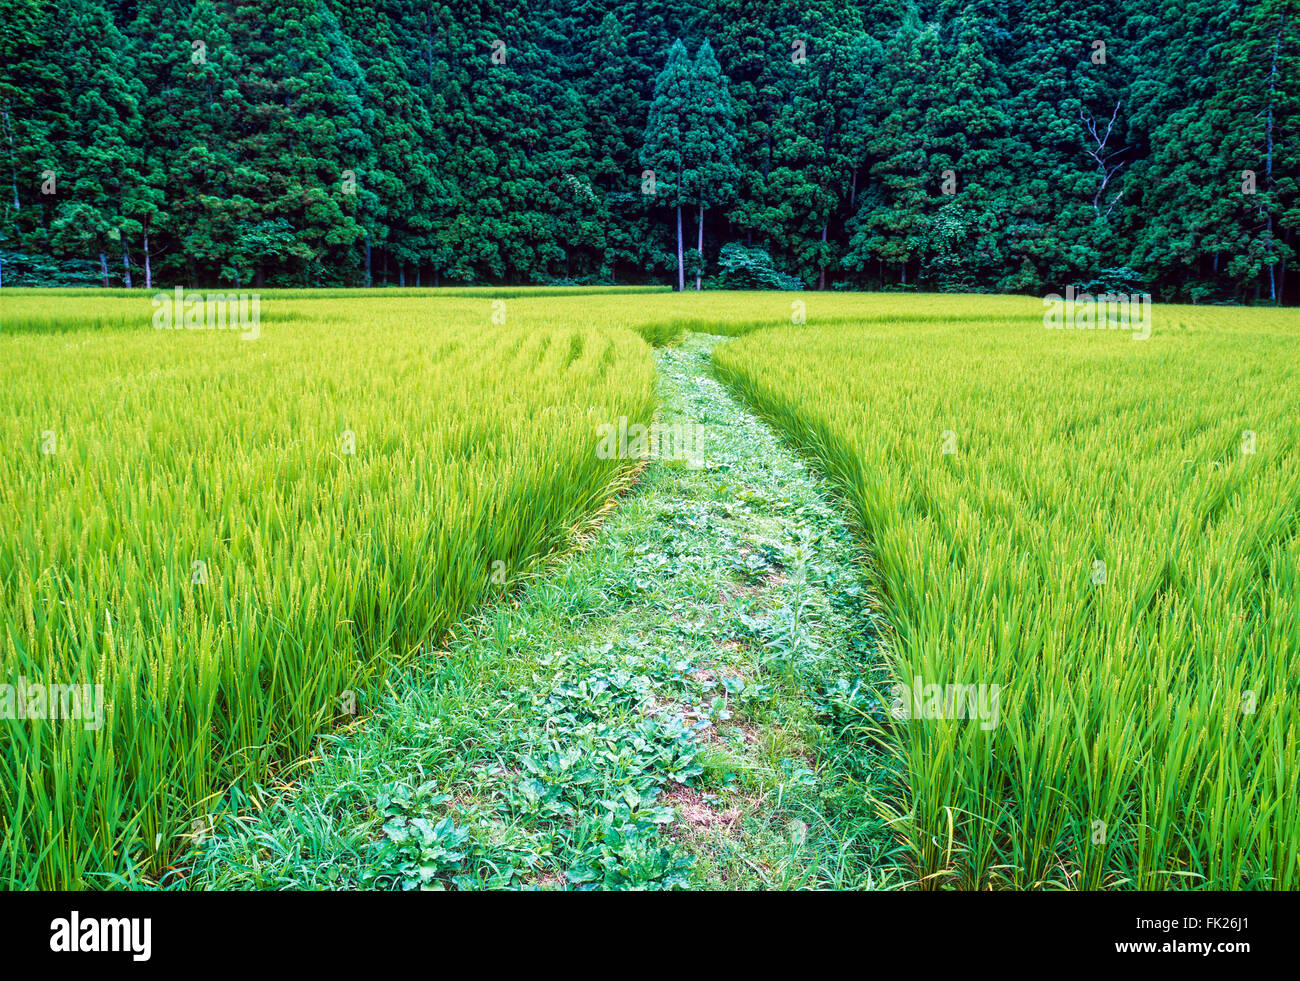 A rice field in the Tohoku Region north of Sendai in Japan - Stock Image